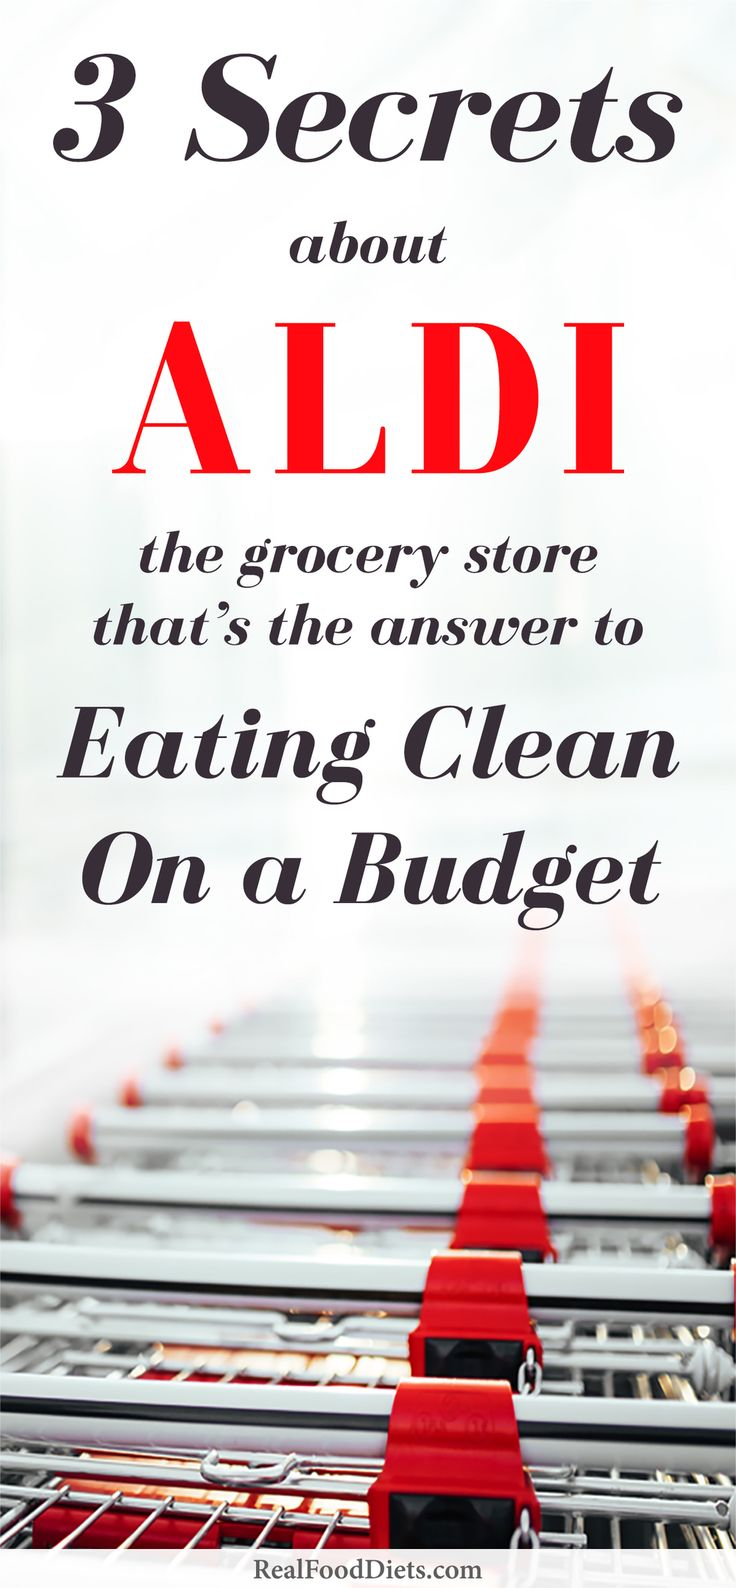 Making your meal plan? Be sure to plan a shopping trip to ALDI, the grocery store that's the answer to clean eating on a budget. Don't know what to buy at ALDI? They carry gluten-free, organic, and paleo diet friendly options. Click to read all of @baconsonabudget's ALDI secrets and the trick to eating healthy on a budget on @realfooddiet